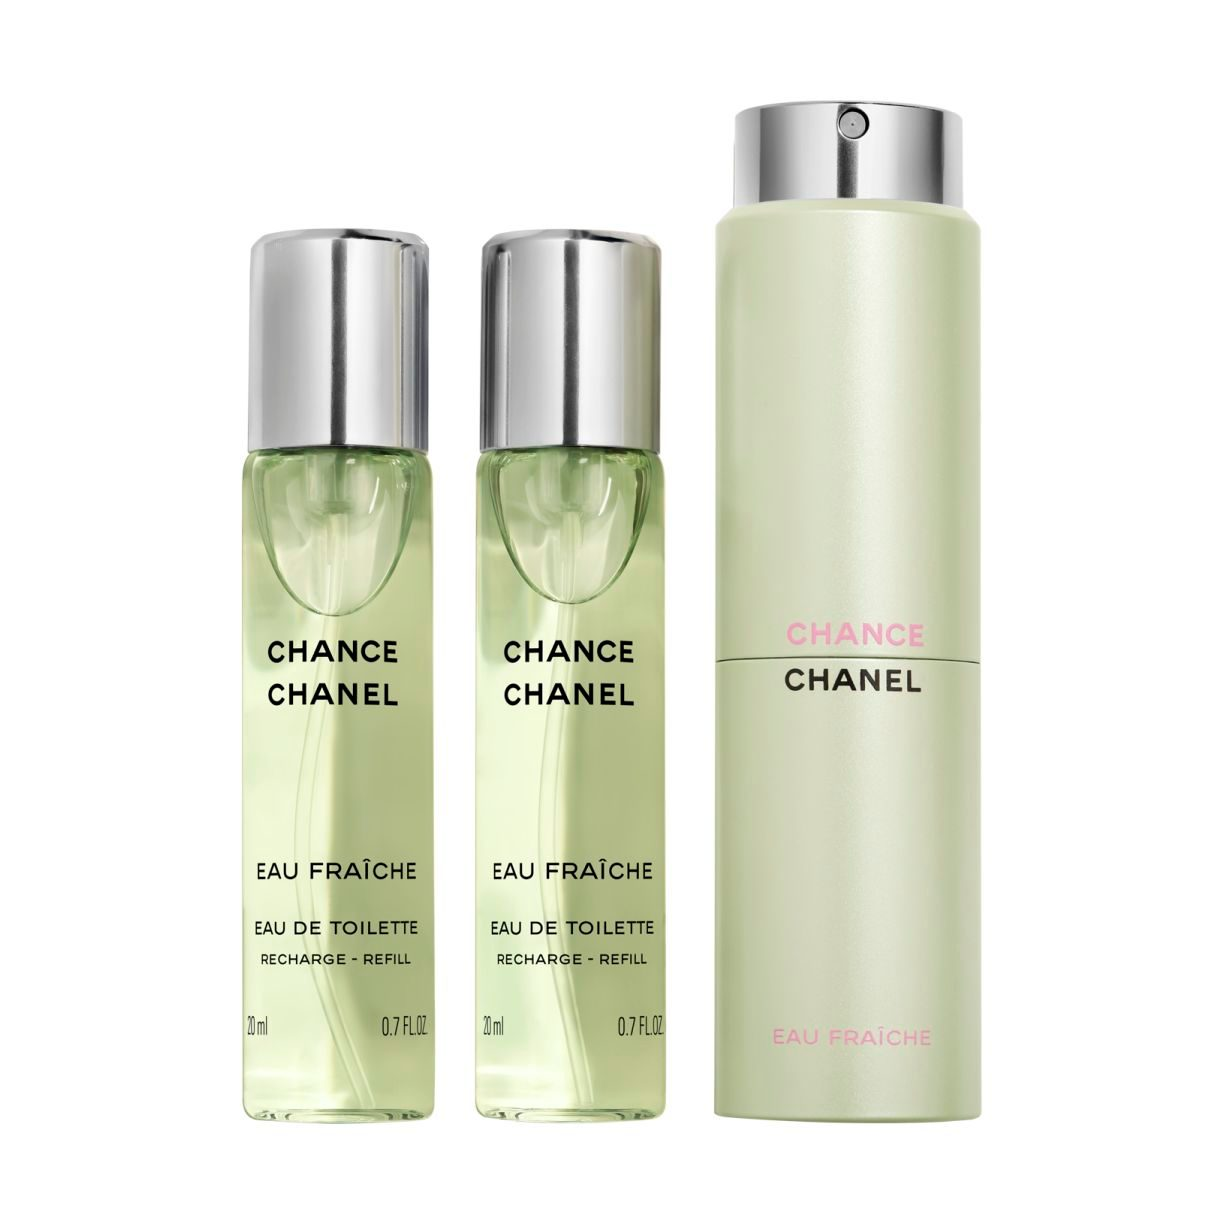 CHANCE EAU FRAÎCHE WODA TOALETOWA TWIST AND SPRAY 3 x 20ml